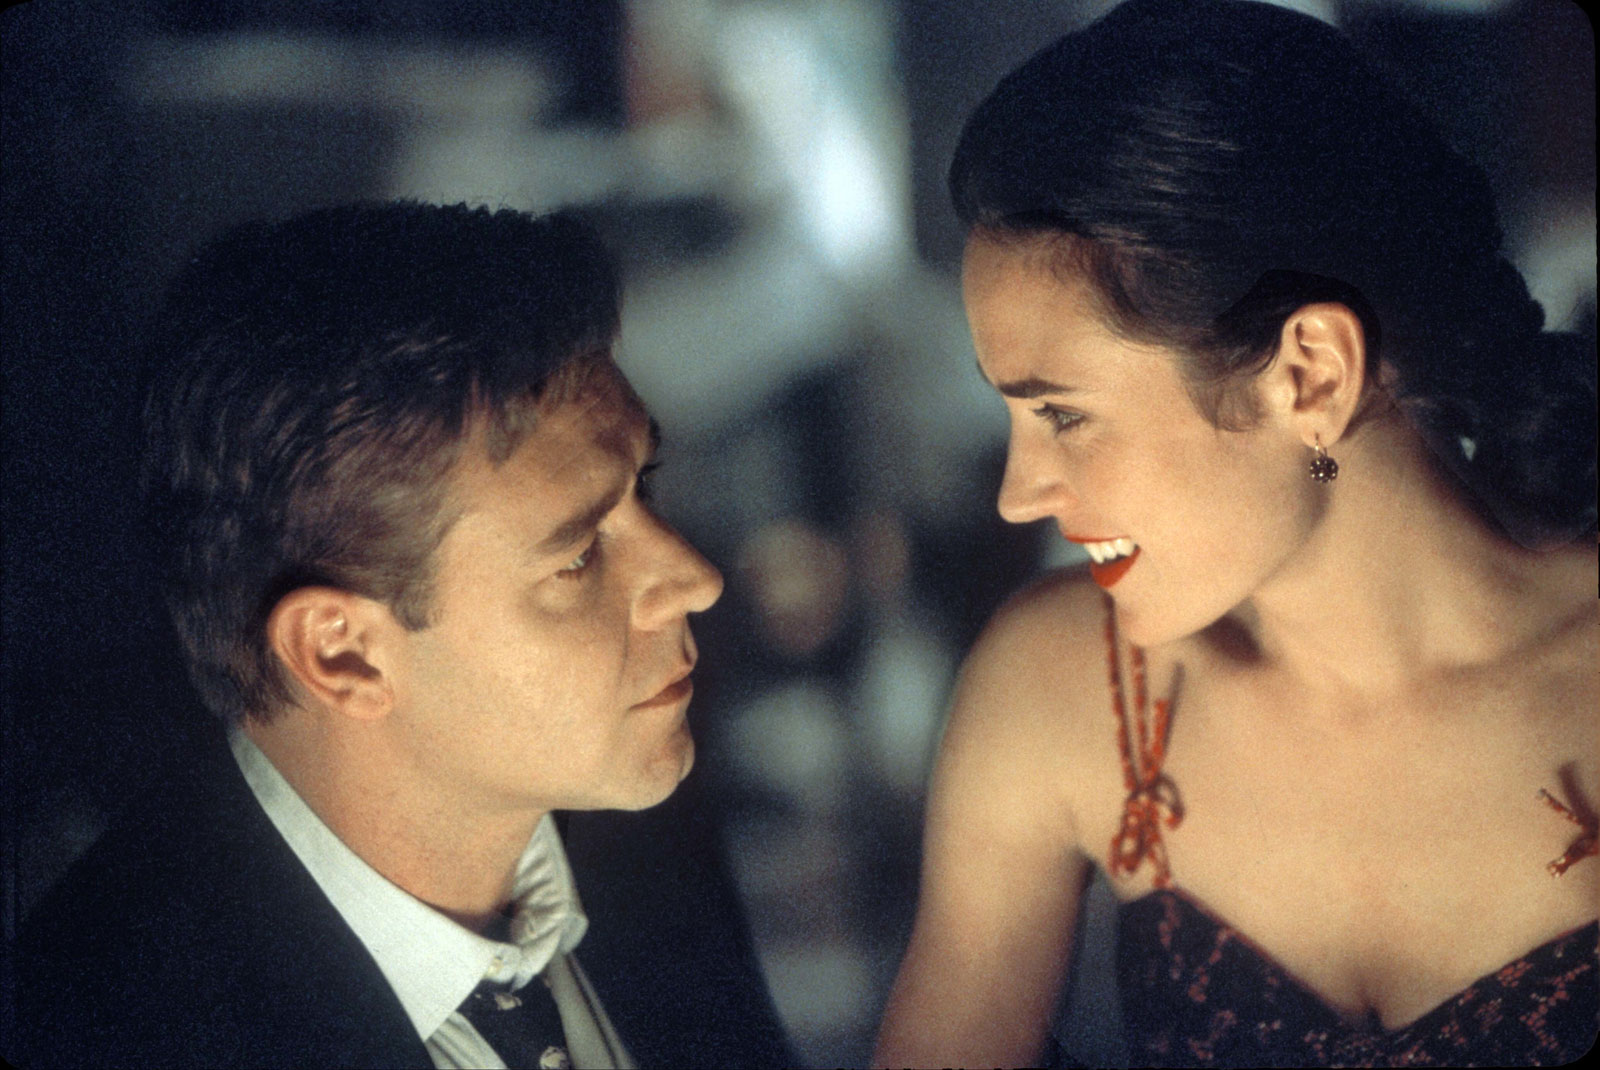 Russell Crowe Jennifer Connelly A Beautiful Mind 2001 Films 'Based On A True Story' That Completely Lied To Us